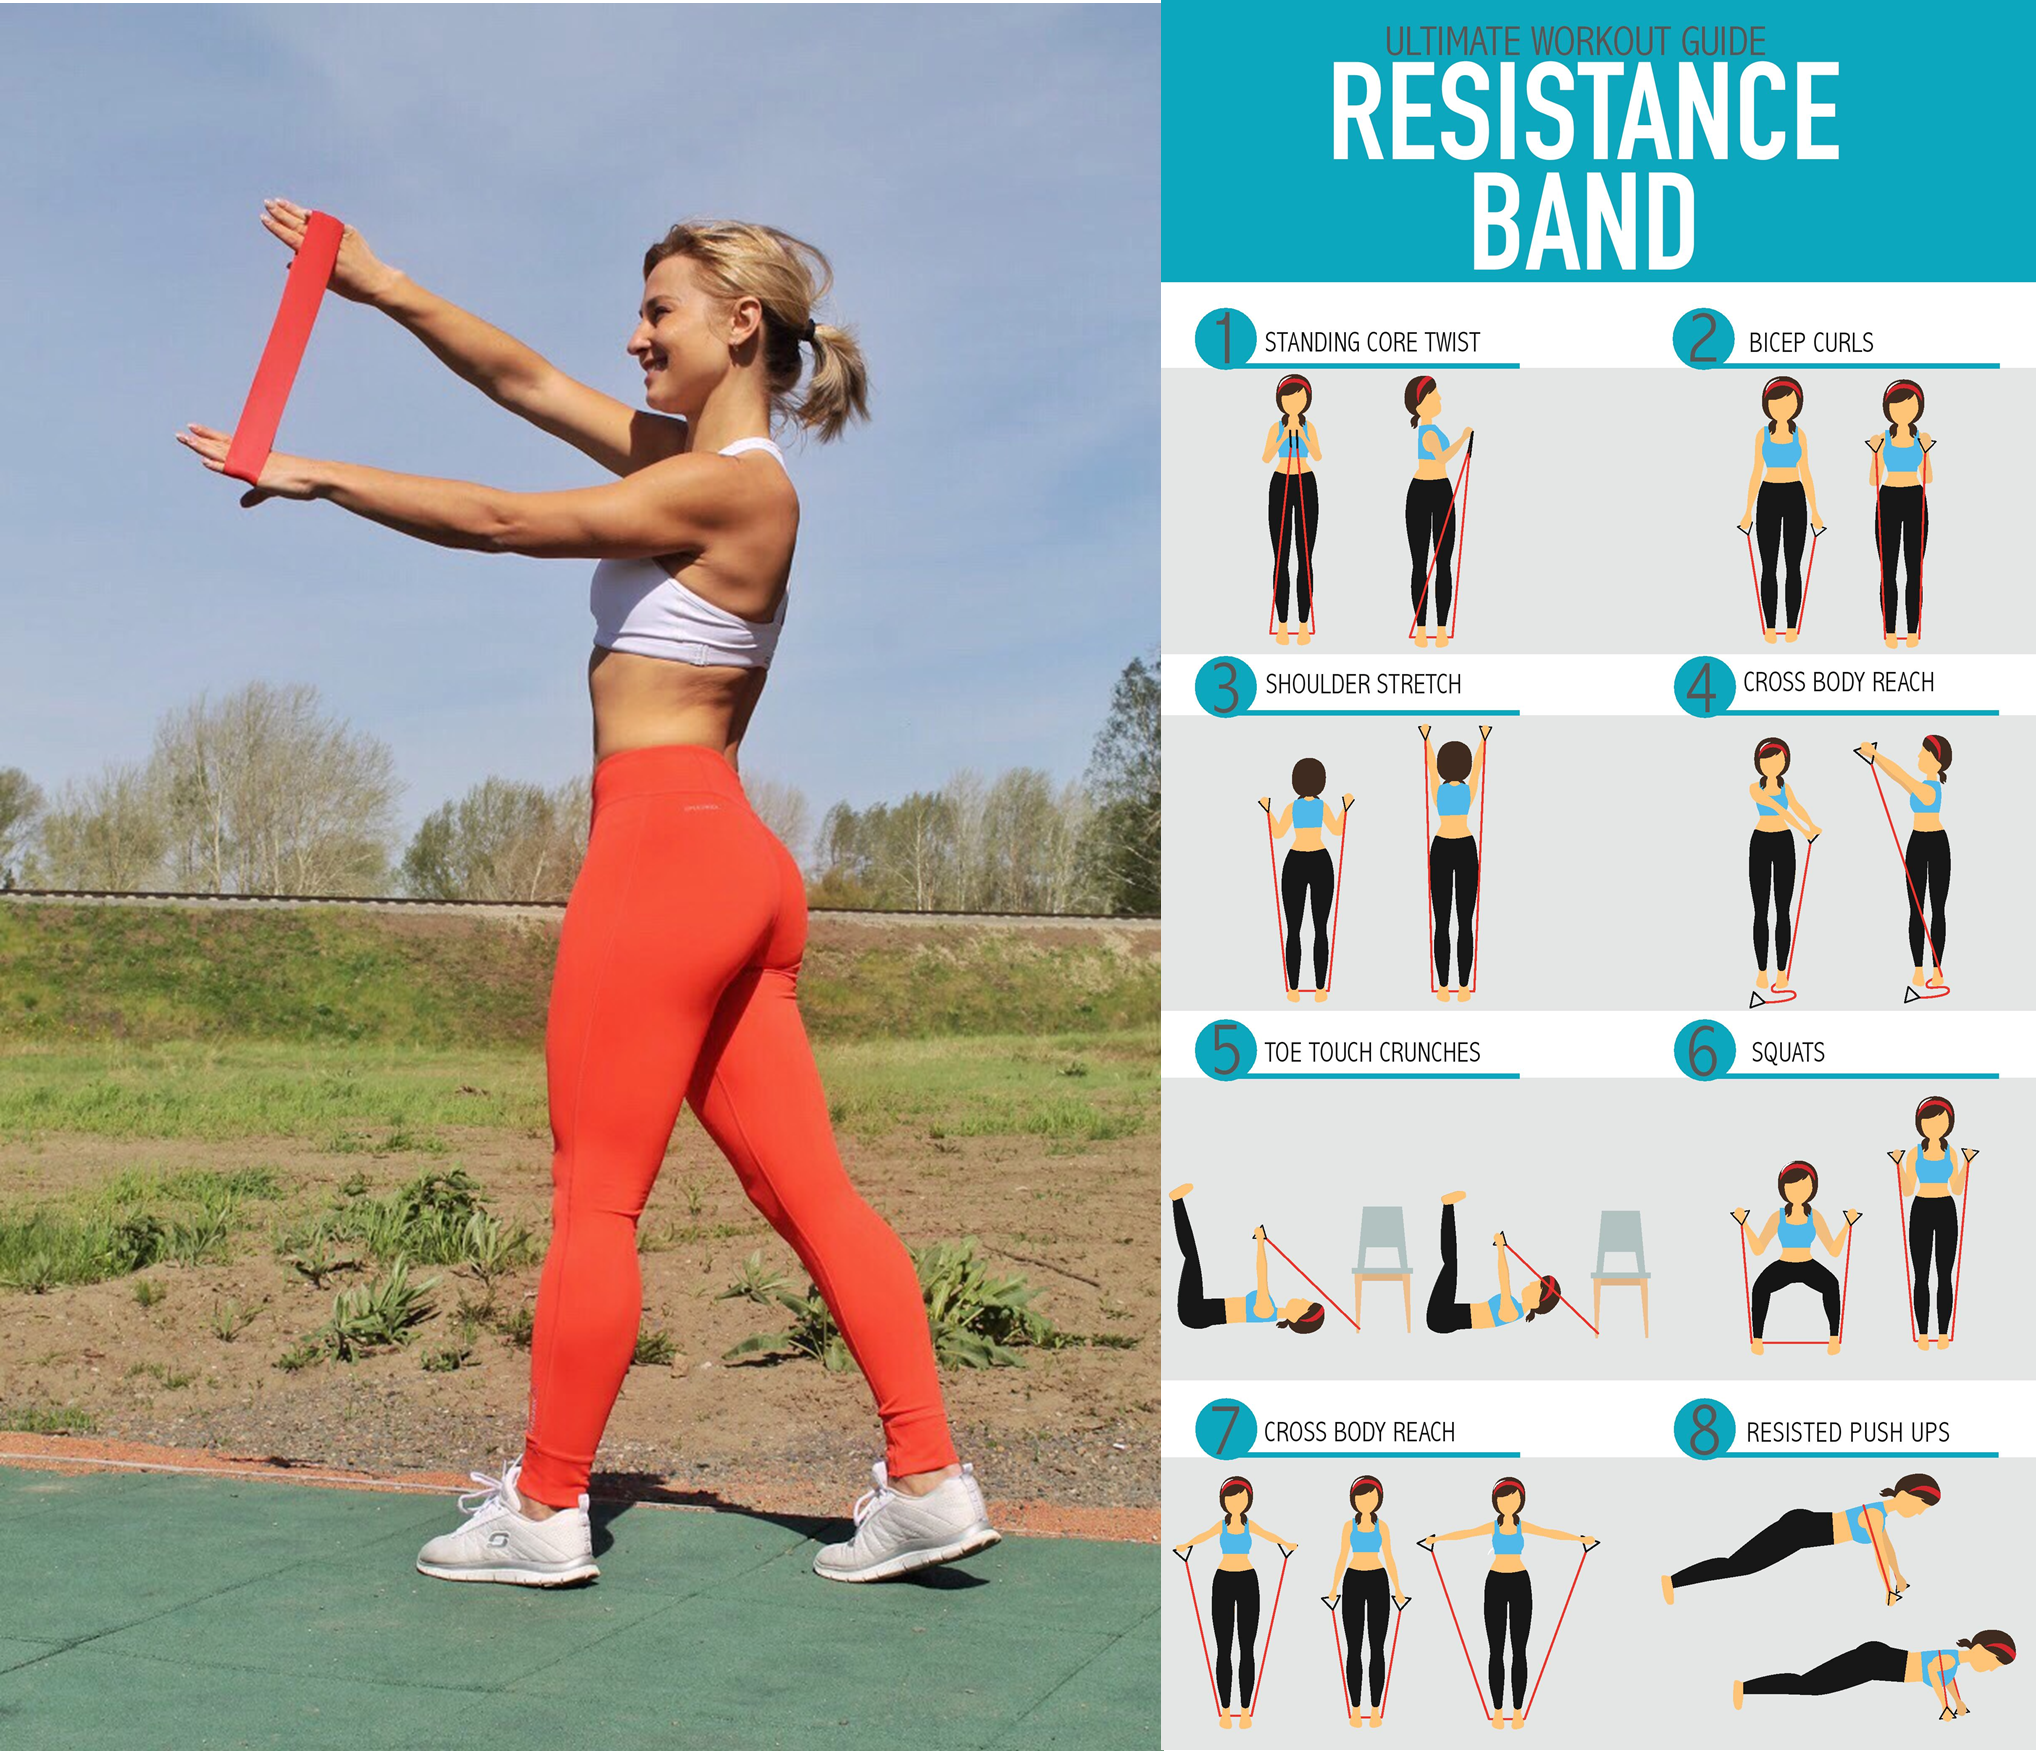 Follow This Workout And Do It With Resistance Bands For